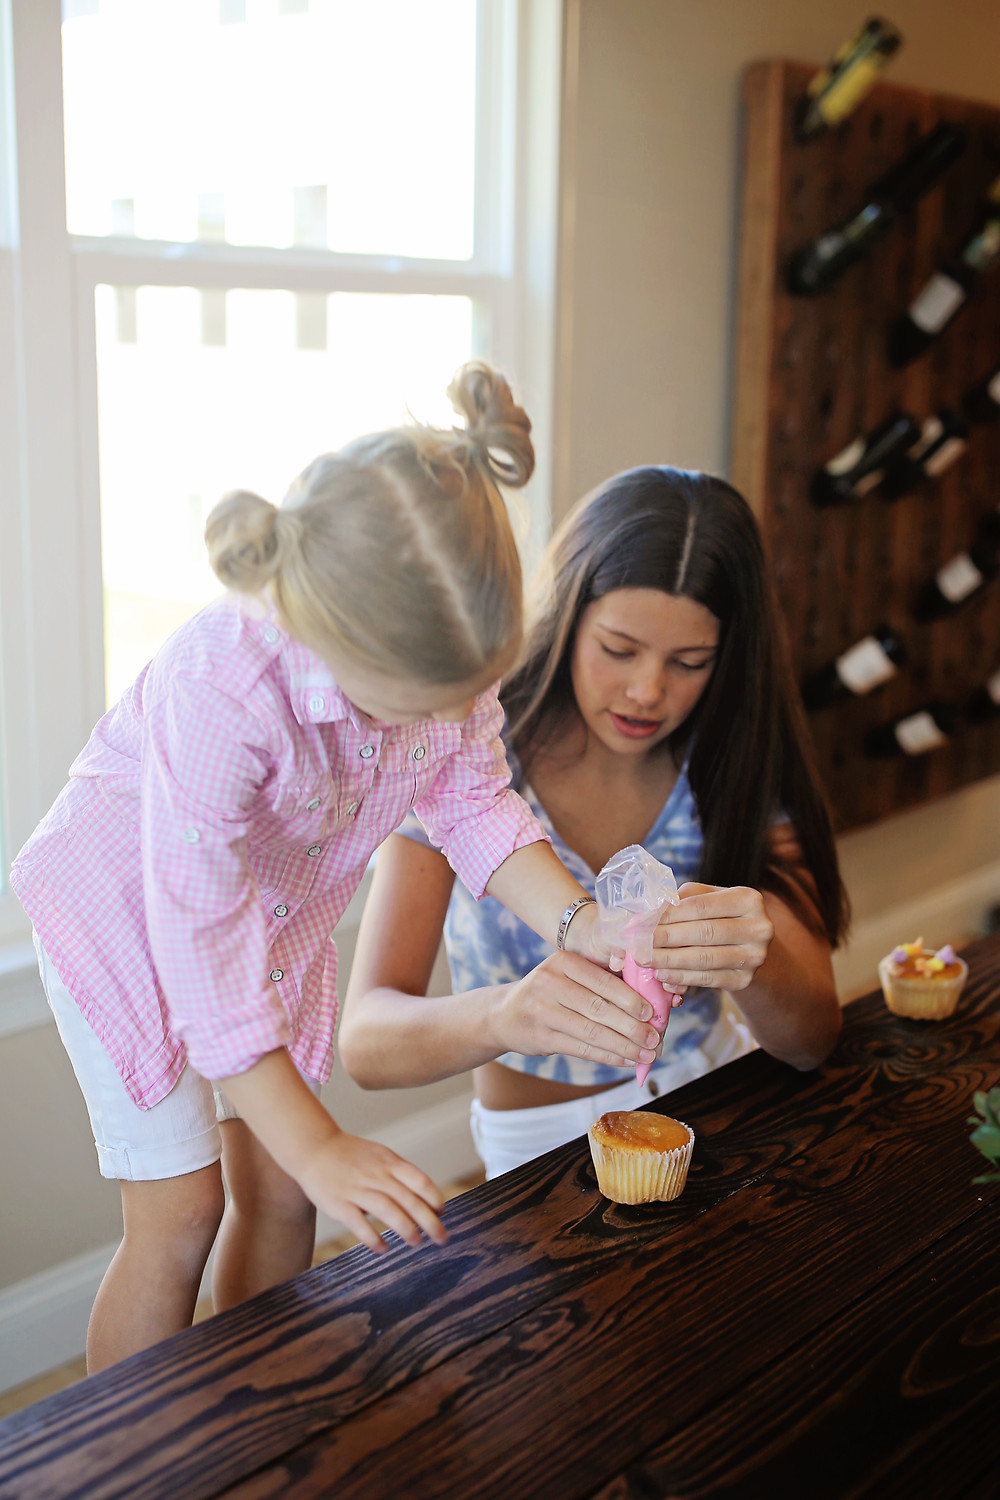 Big sister is helping little sister add icing to a cupcake